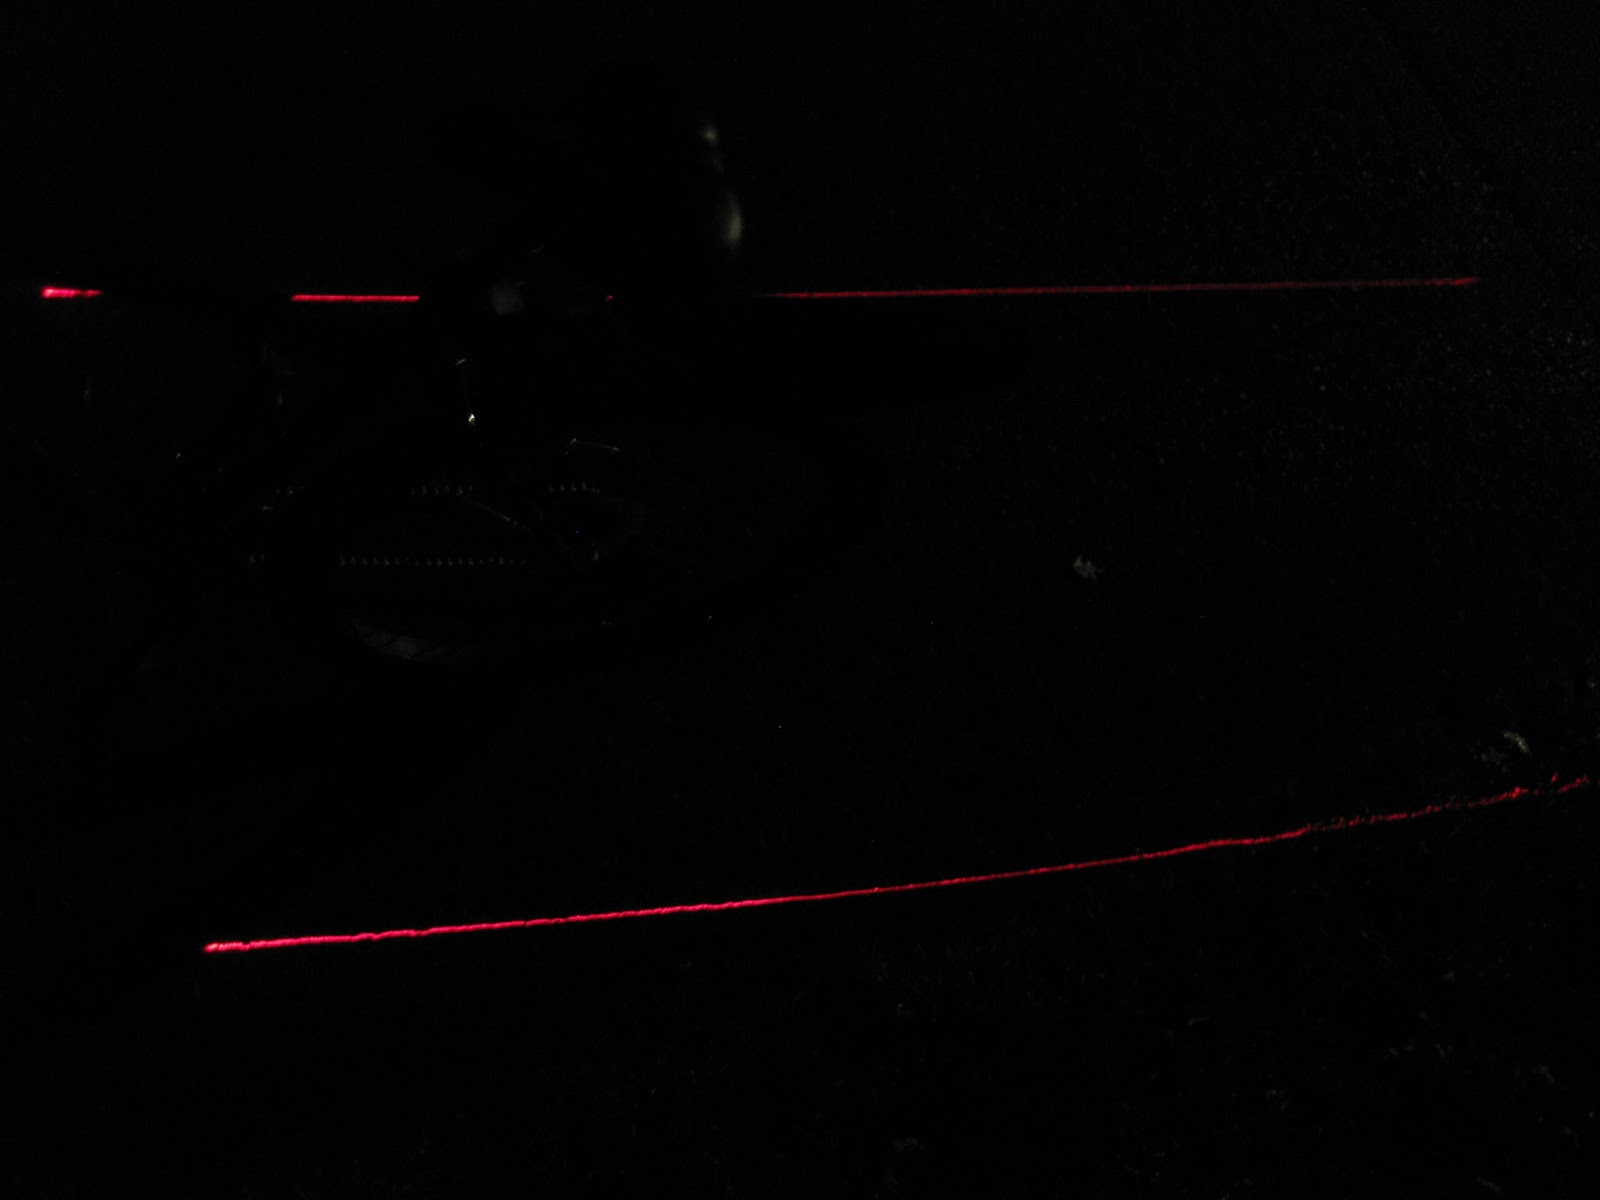 My bicycle rear red light projects these laser lines.